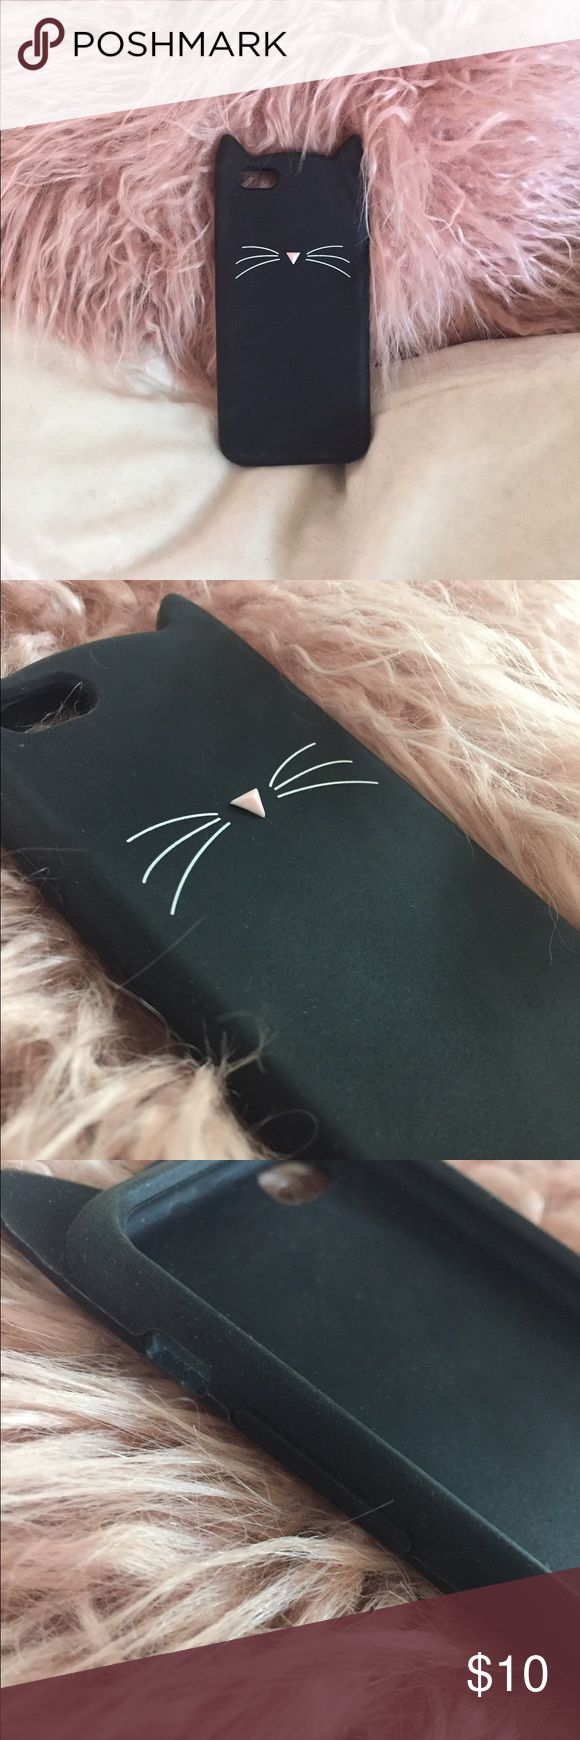 Cat Ear iPhone 6/6S Case!! Super cute iPhone 6/6S phone case in the shape of a cat (meow) • made of a rubber material • adorable and not very bulky Accessories Phone Cases